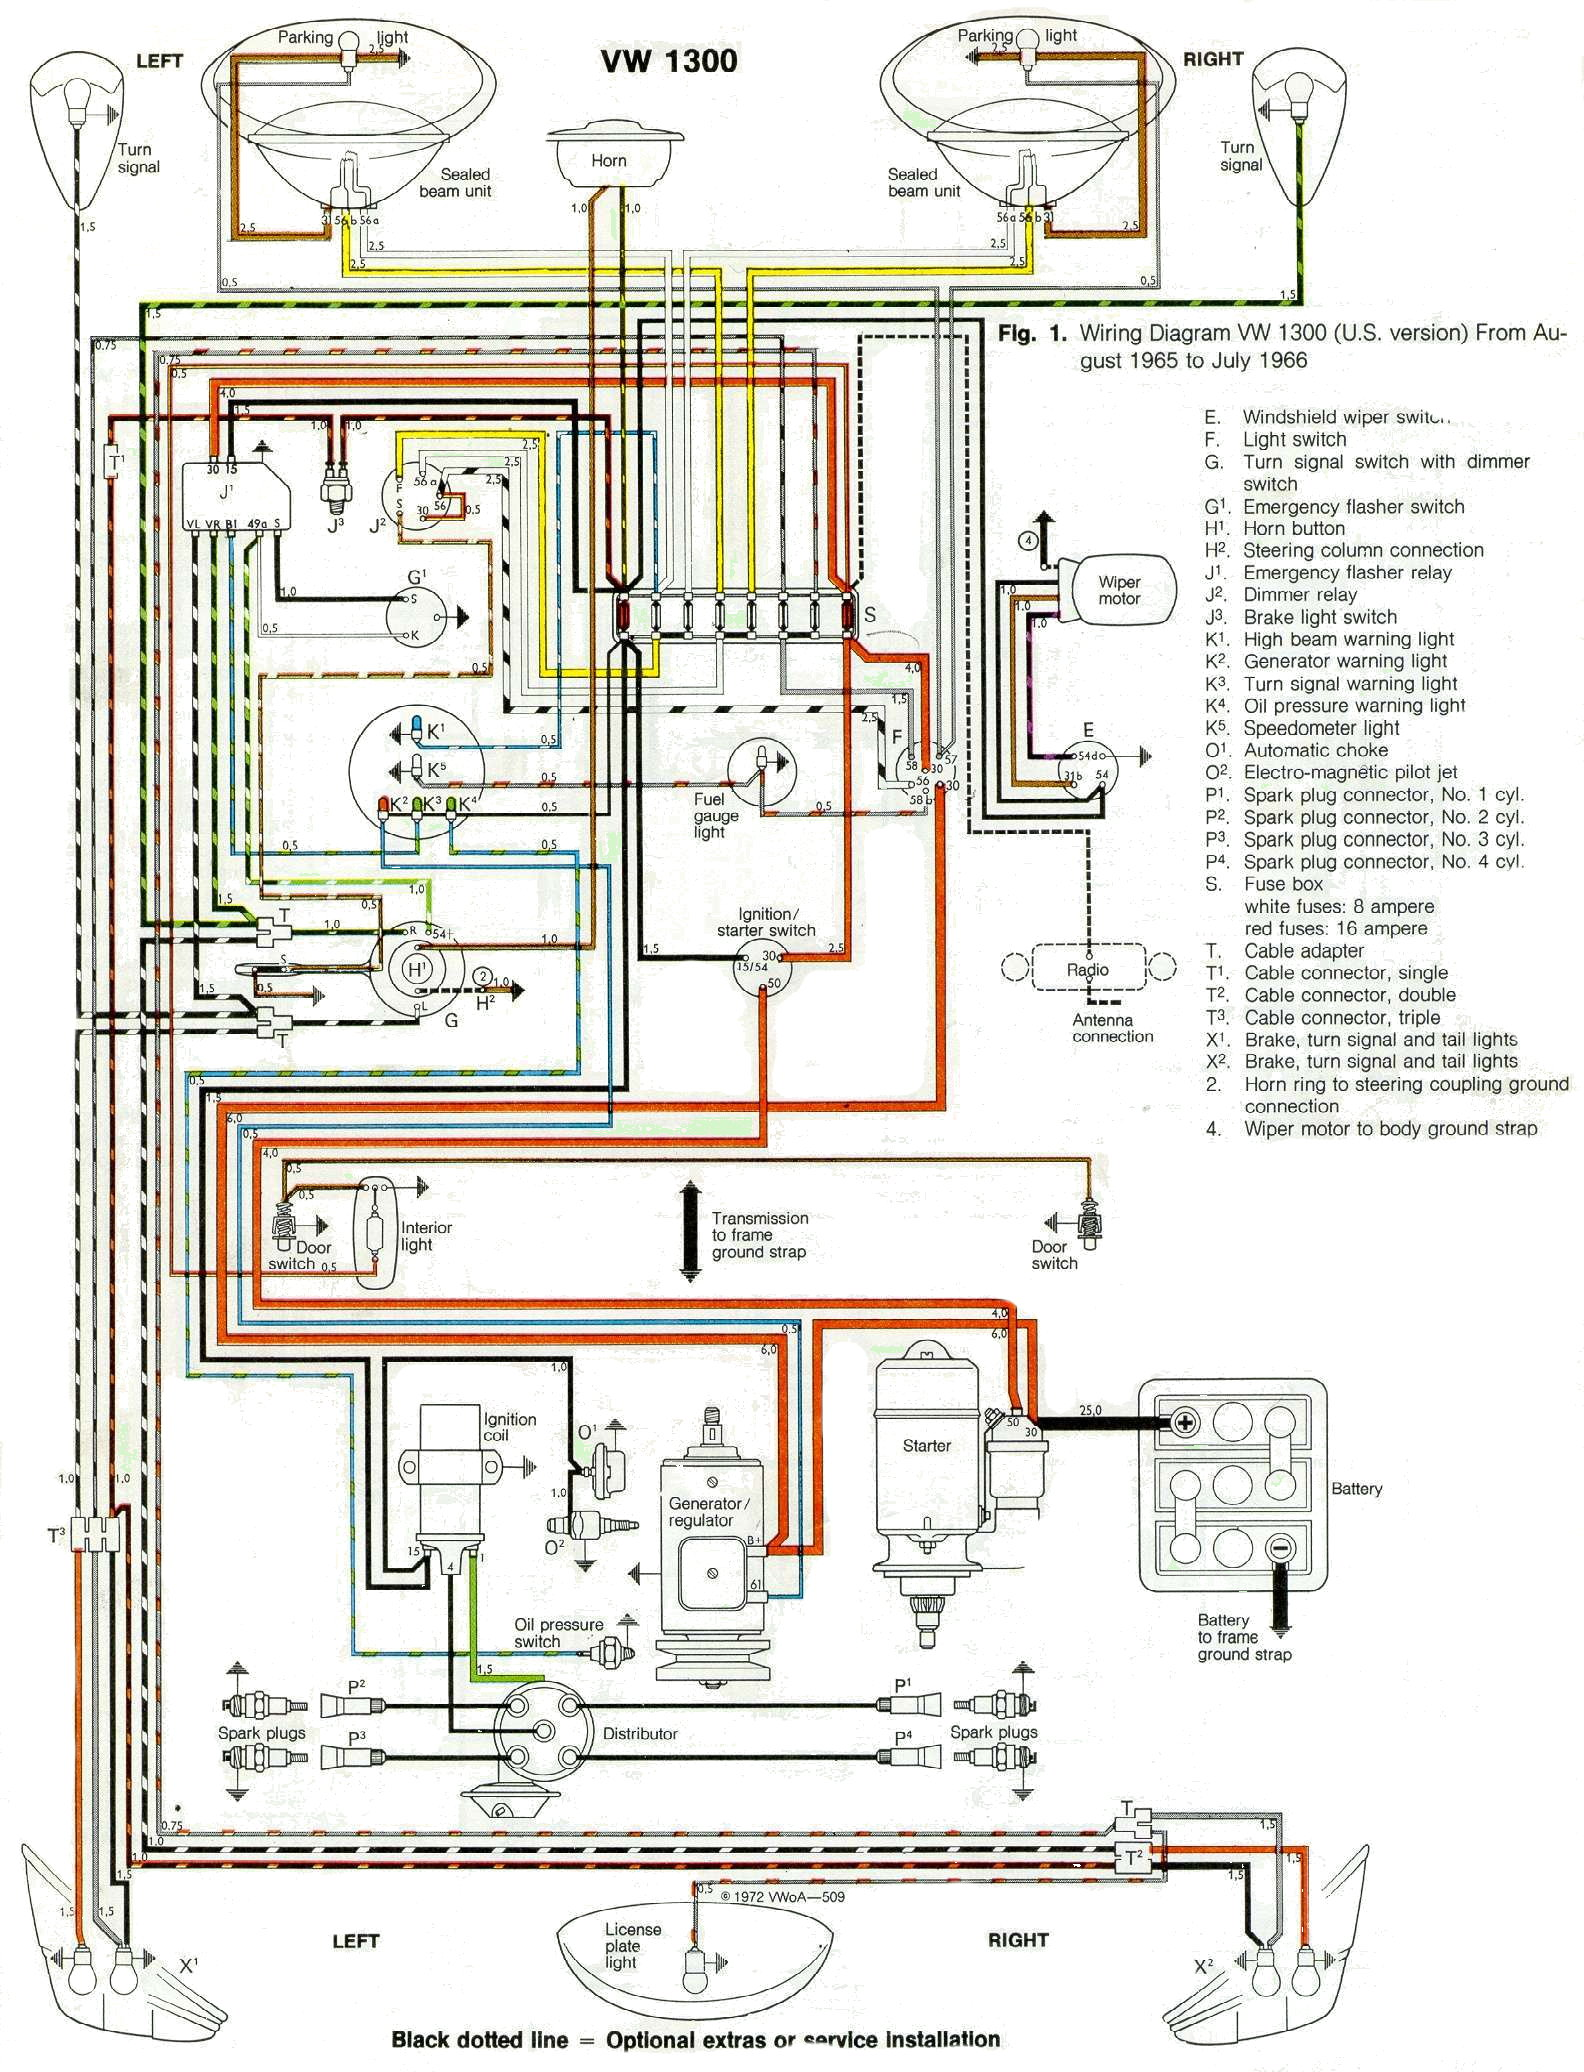 1966 Wiring 1966 wiring diagram vw golf 3 electrical wiring diagram at mifinder.co